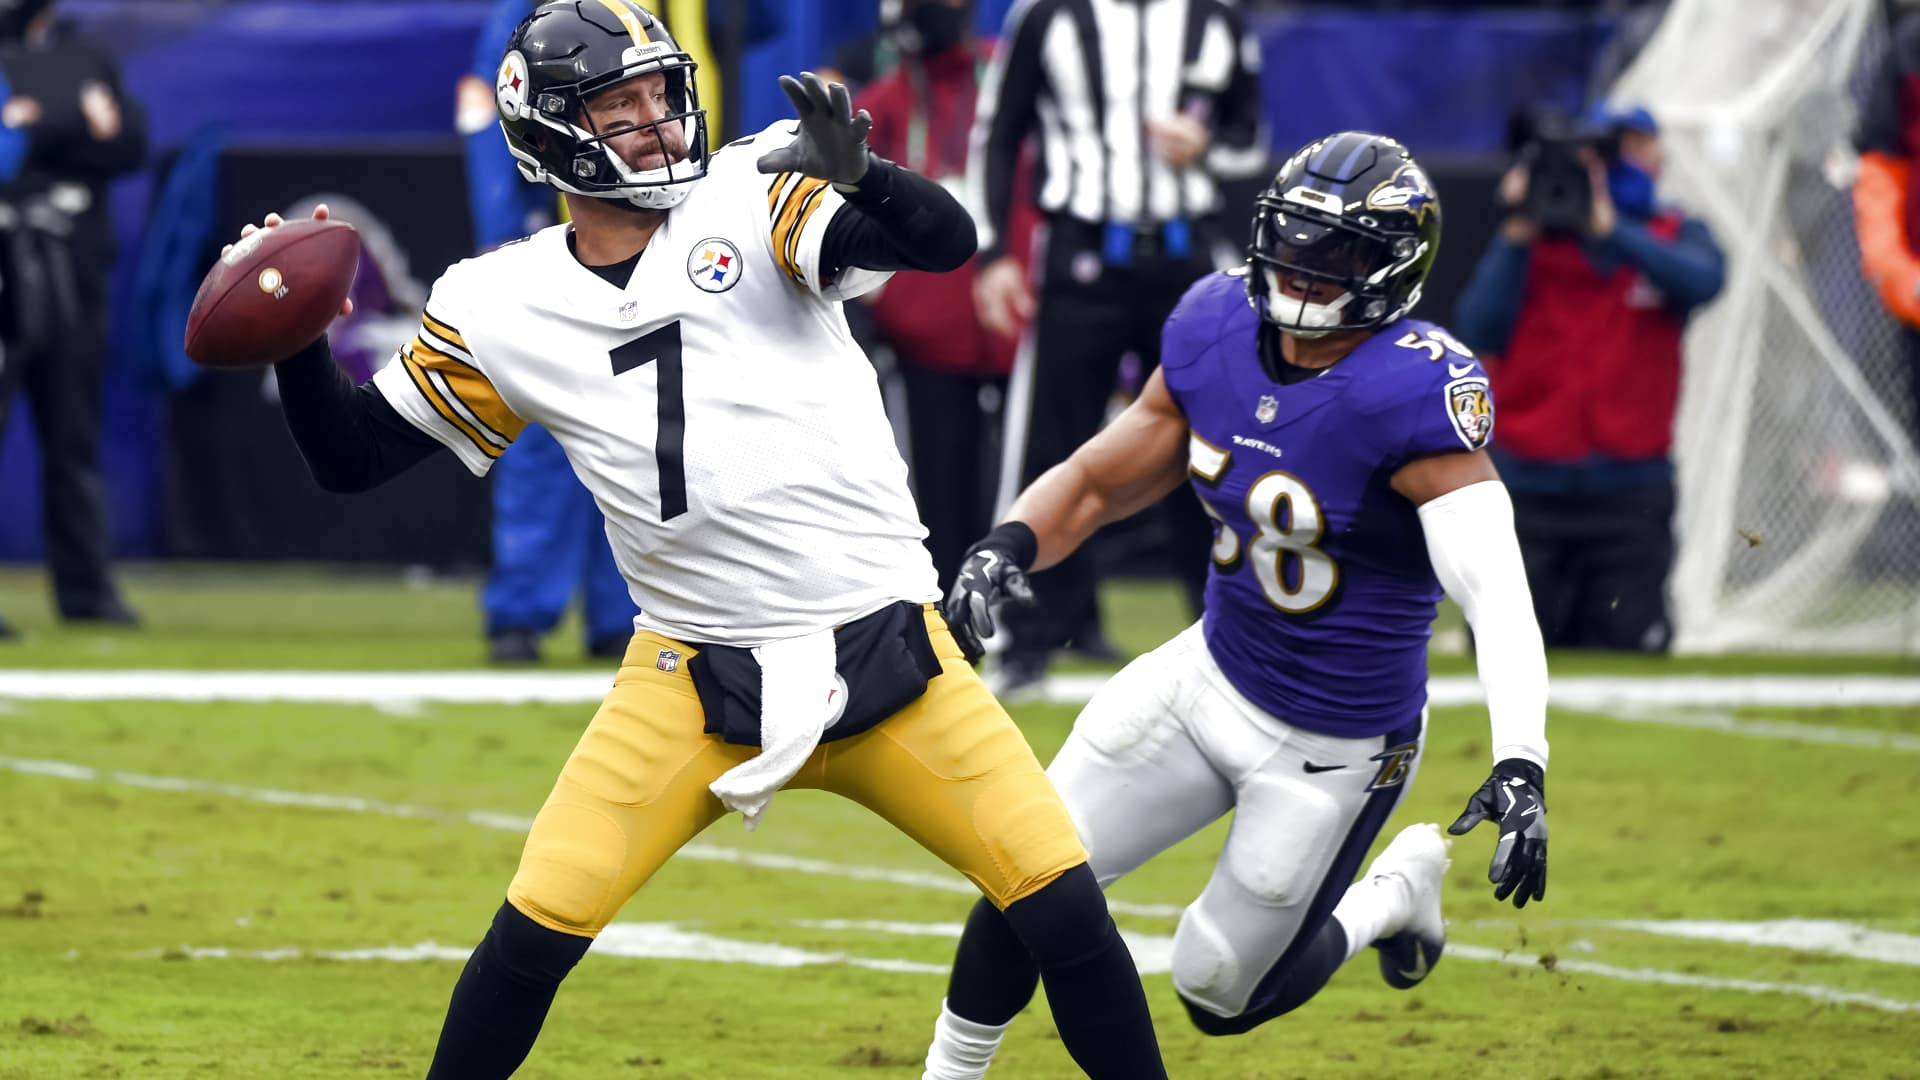 Pittsburgh Steelers quarterback Ben Roethlisberger (7) drops back to pass against the rush of Baltimore Ravens linebacker L.J. Fort (58) during the Pittsburgh Steelers game versus the Baltimore Ravens on November 1, 2020 at M&T Bank Stadium in Baltimore, MD.